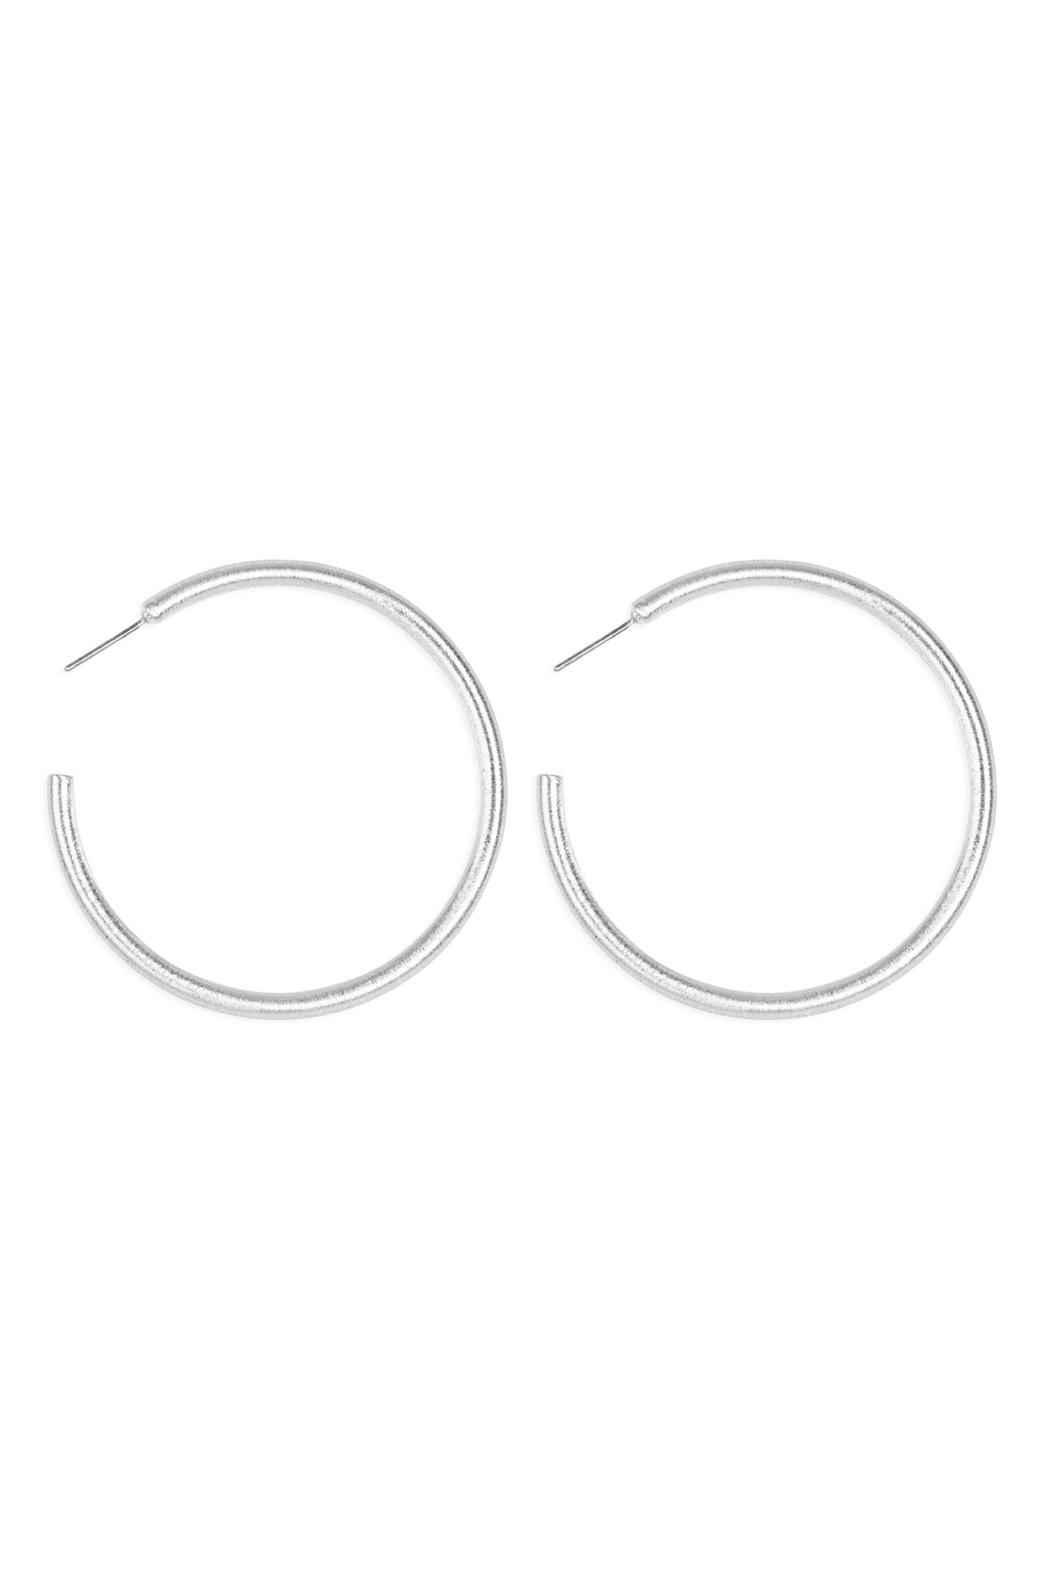 Riah Fashion 2-Inch-'C'-Pipe Satin Finish-Hoop-Earrings - Front Cropped Image